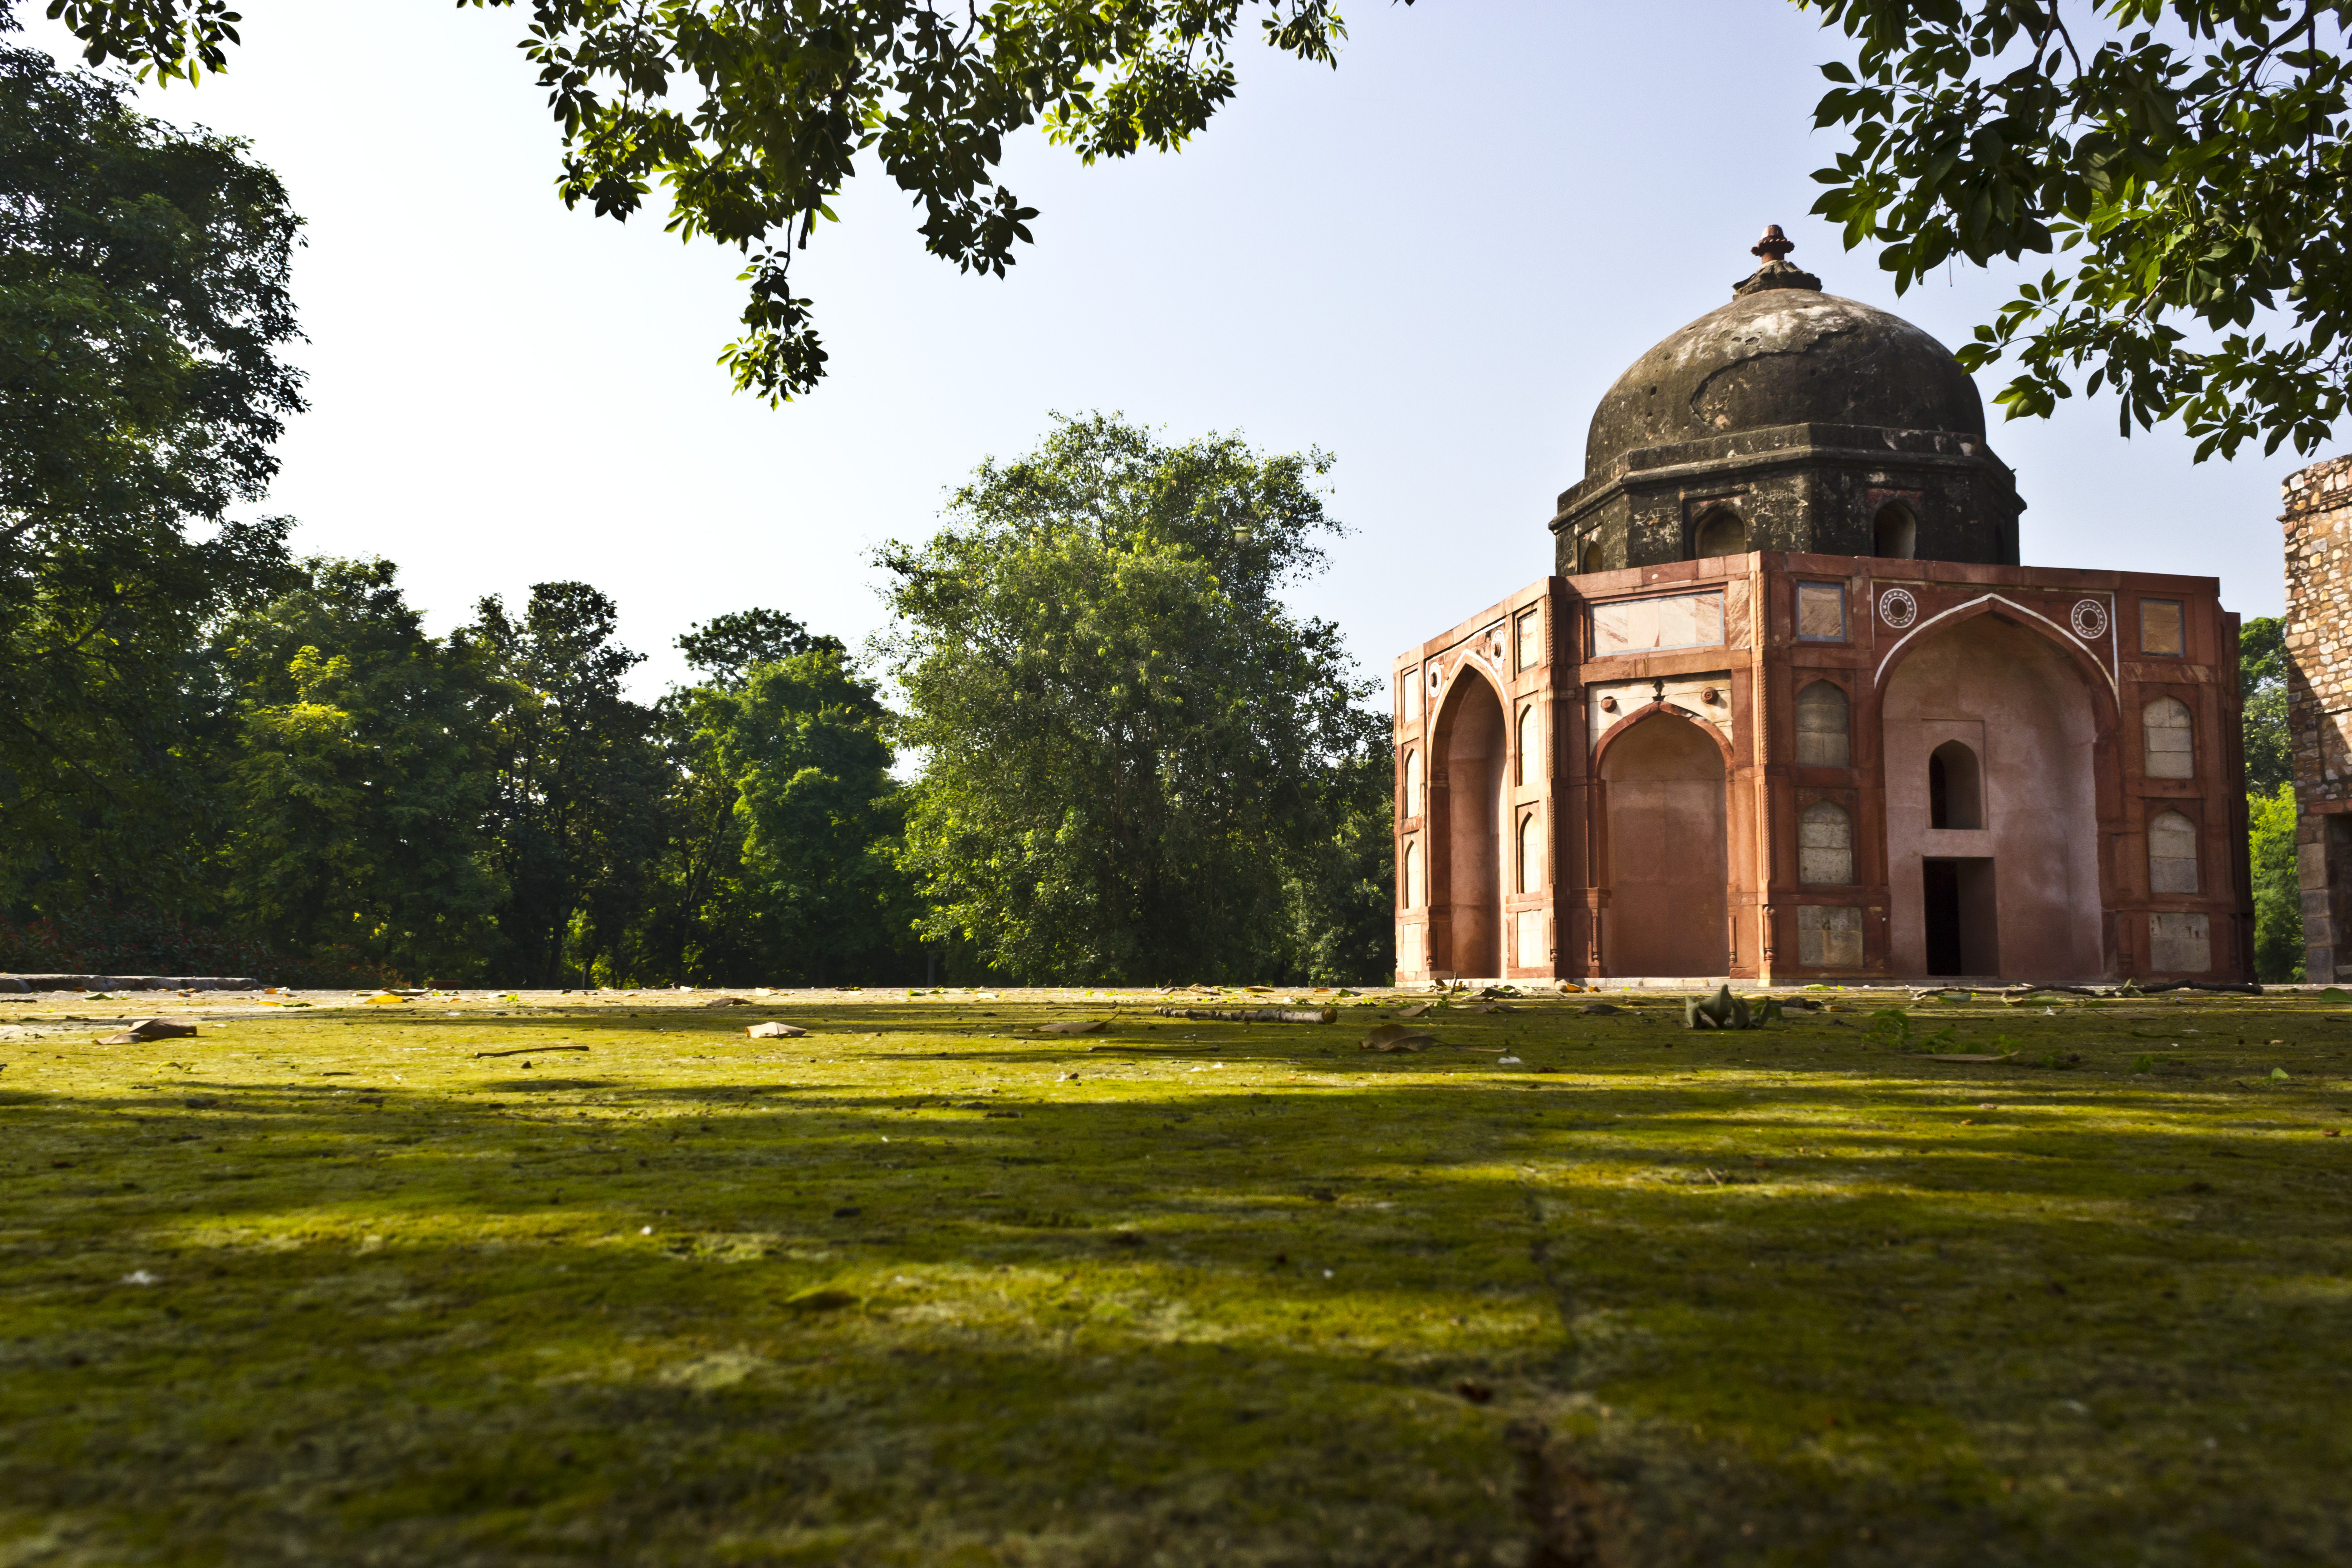 File:Afsarwala tomb - Landscape view.JPG - Wikimedia Commons